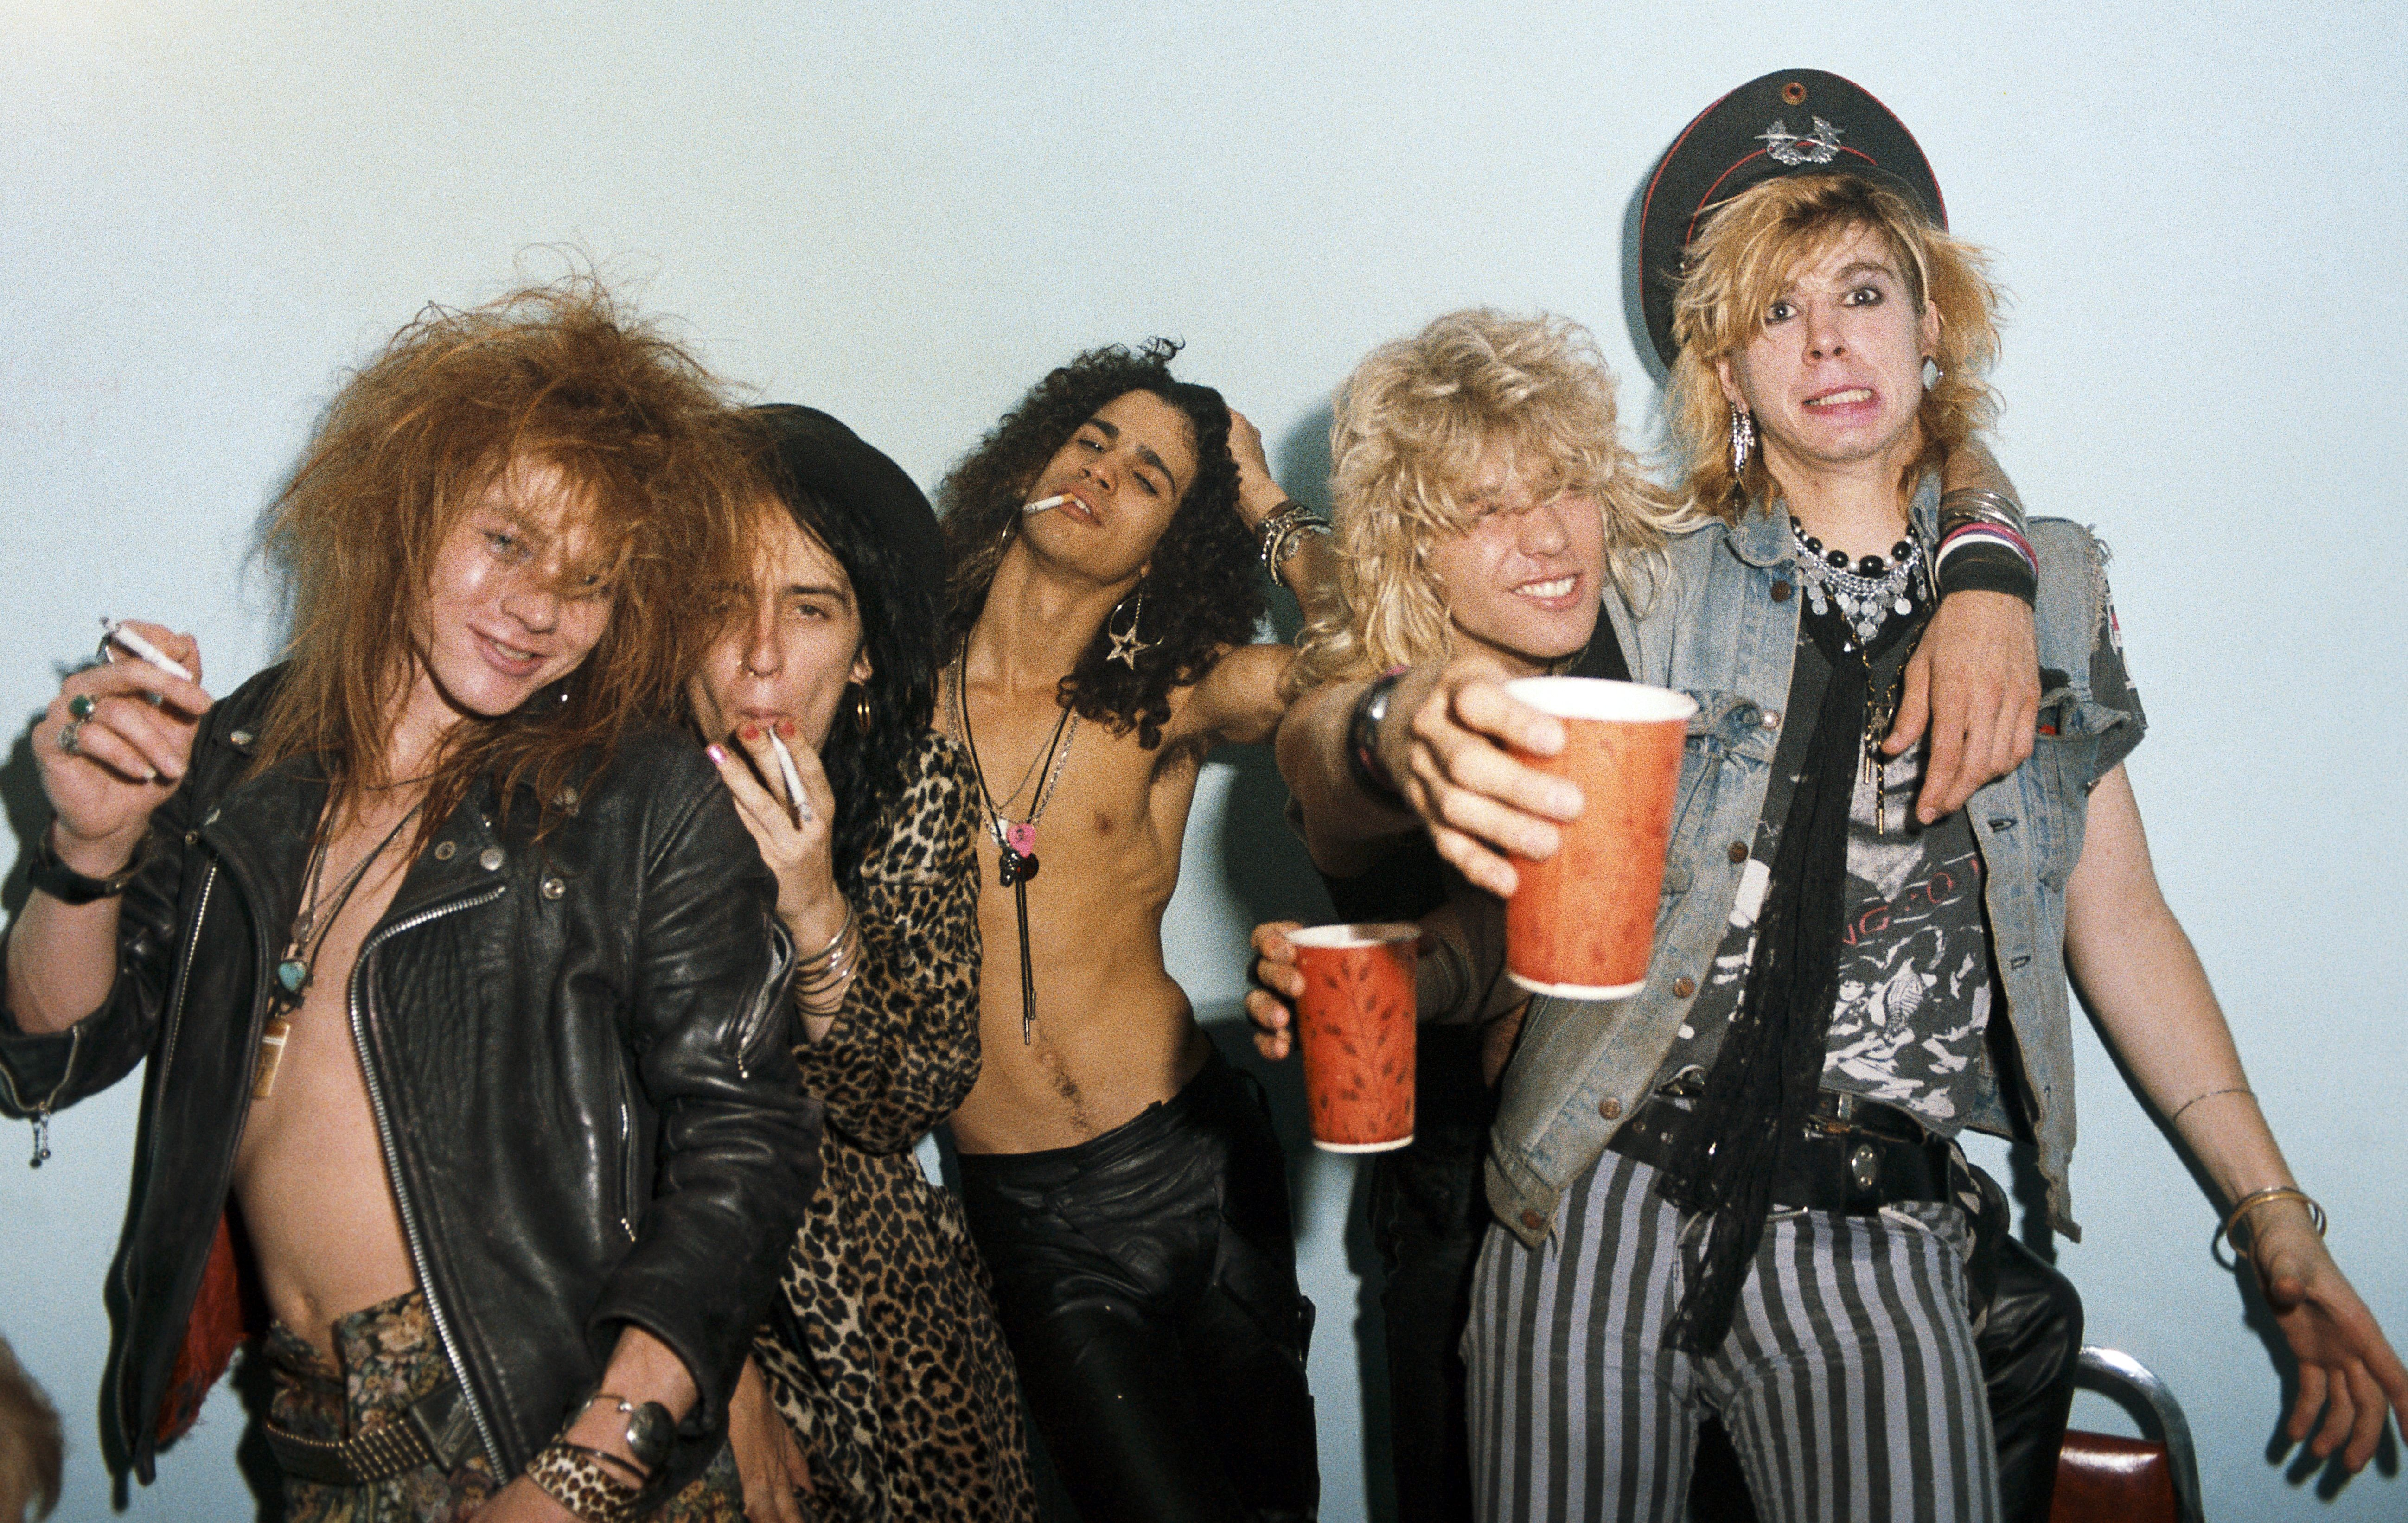 LOS ANGELES - JUNE 28: (L-R) Axl Rose, Izzy Stradlin, Slash, Steven Adler and Duff McKagan of the rock group 'Guns n' Roses' pose for a portrait at the Stardust Ballroom on June 28, 1985 in Los Angeles, California. (Photo by Jack Lue/Michael Ochs Archives/Getty Images)